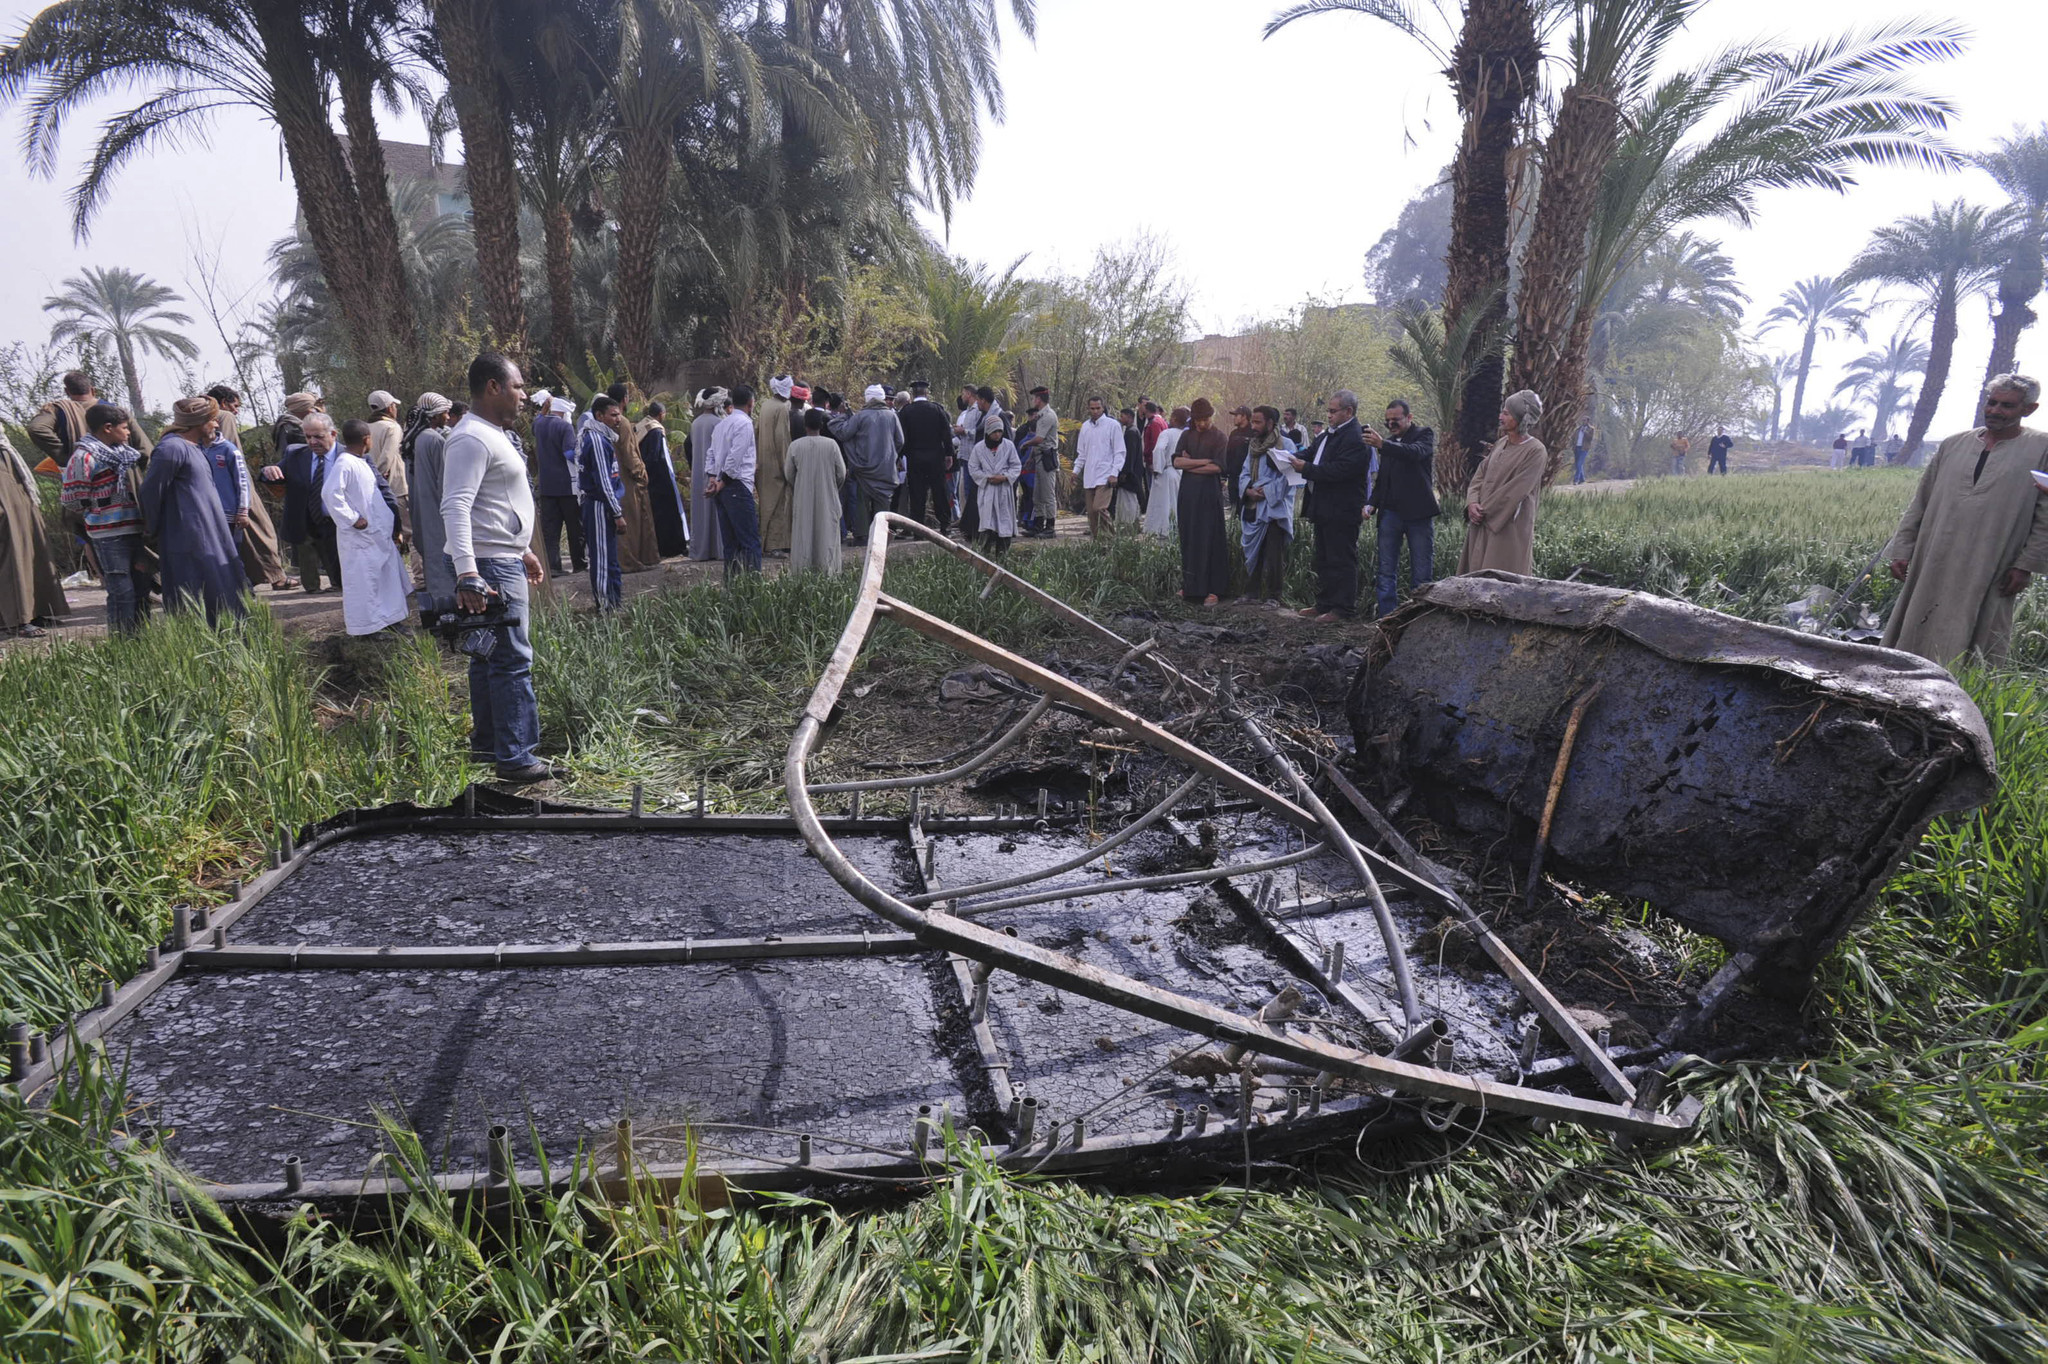 Hot-air balloon crash in Egypt kills 18 - Crash site